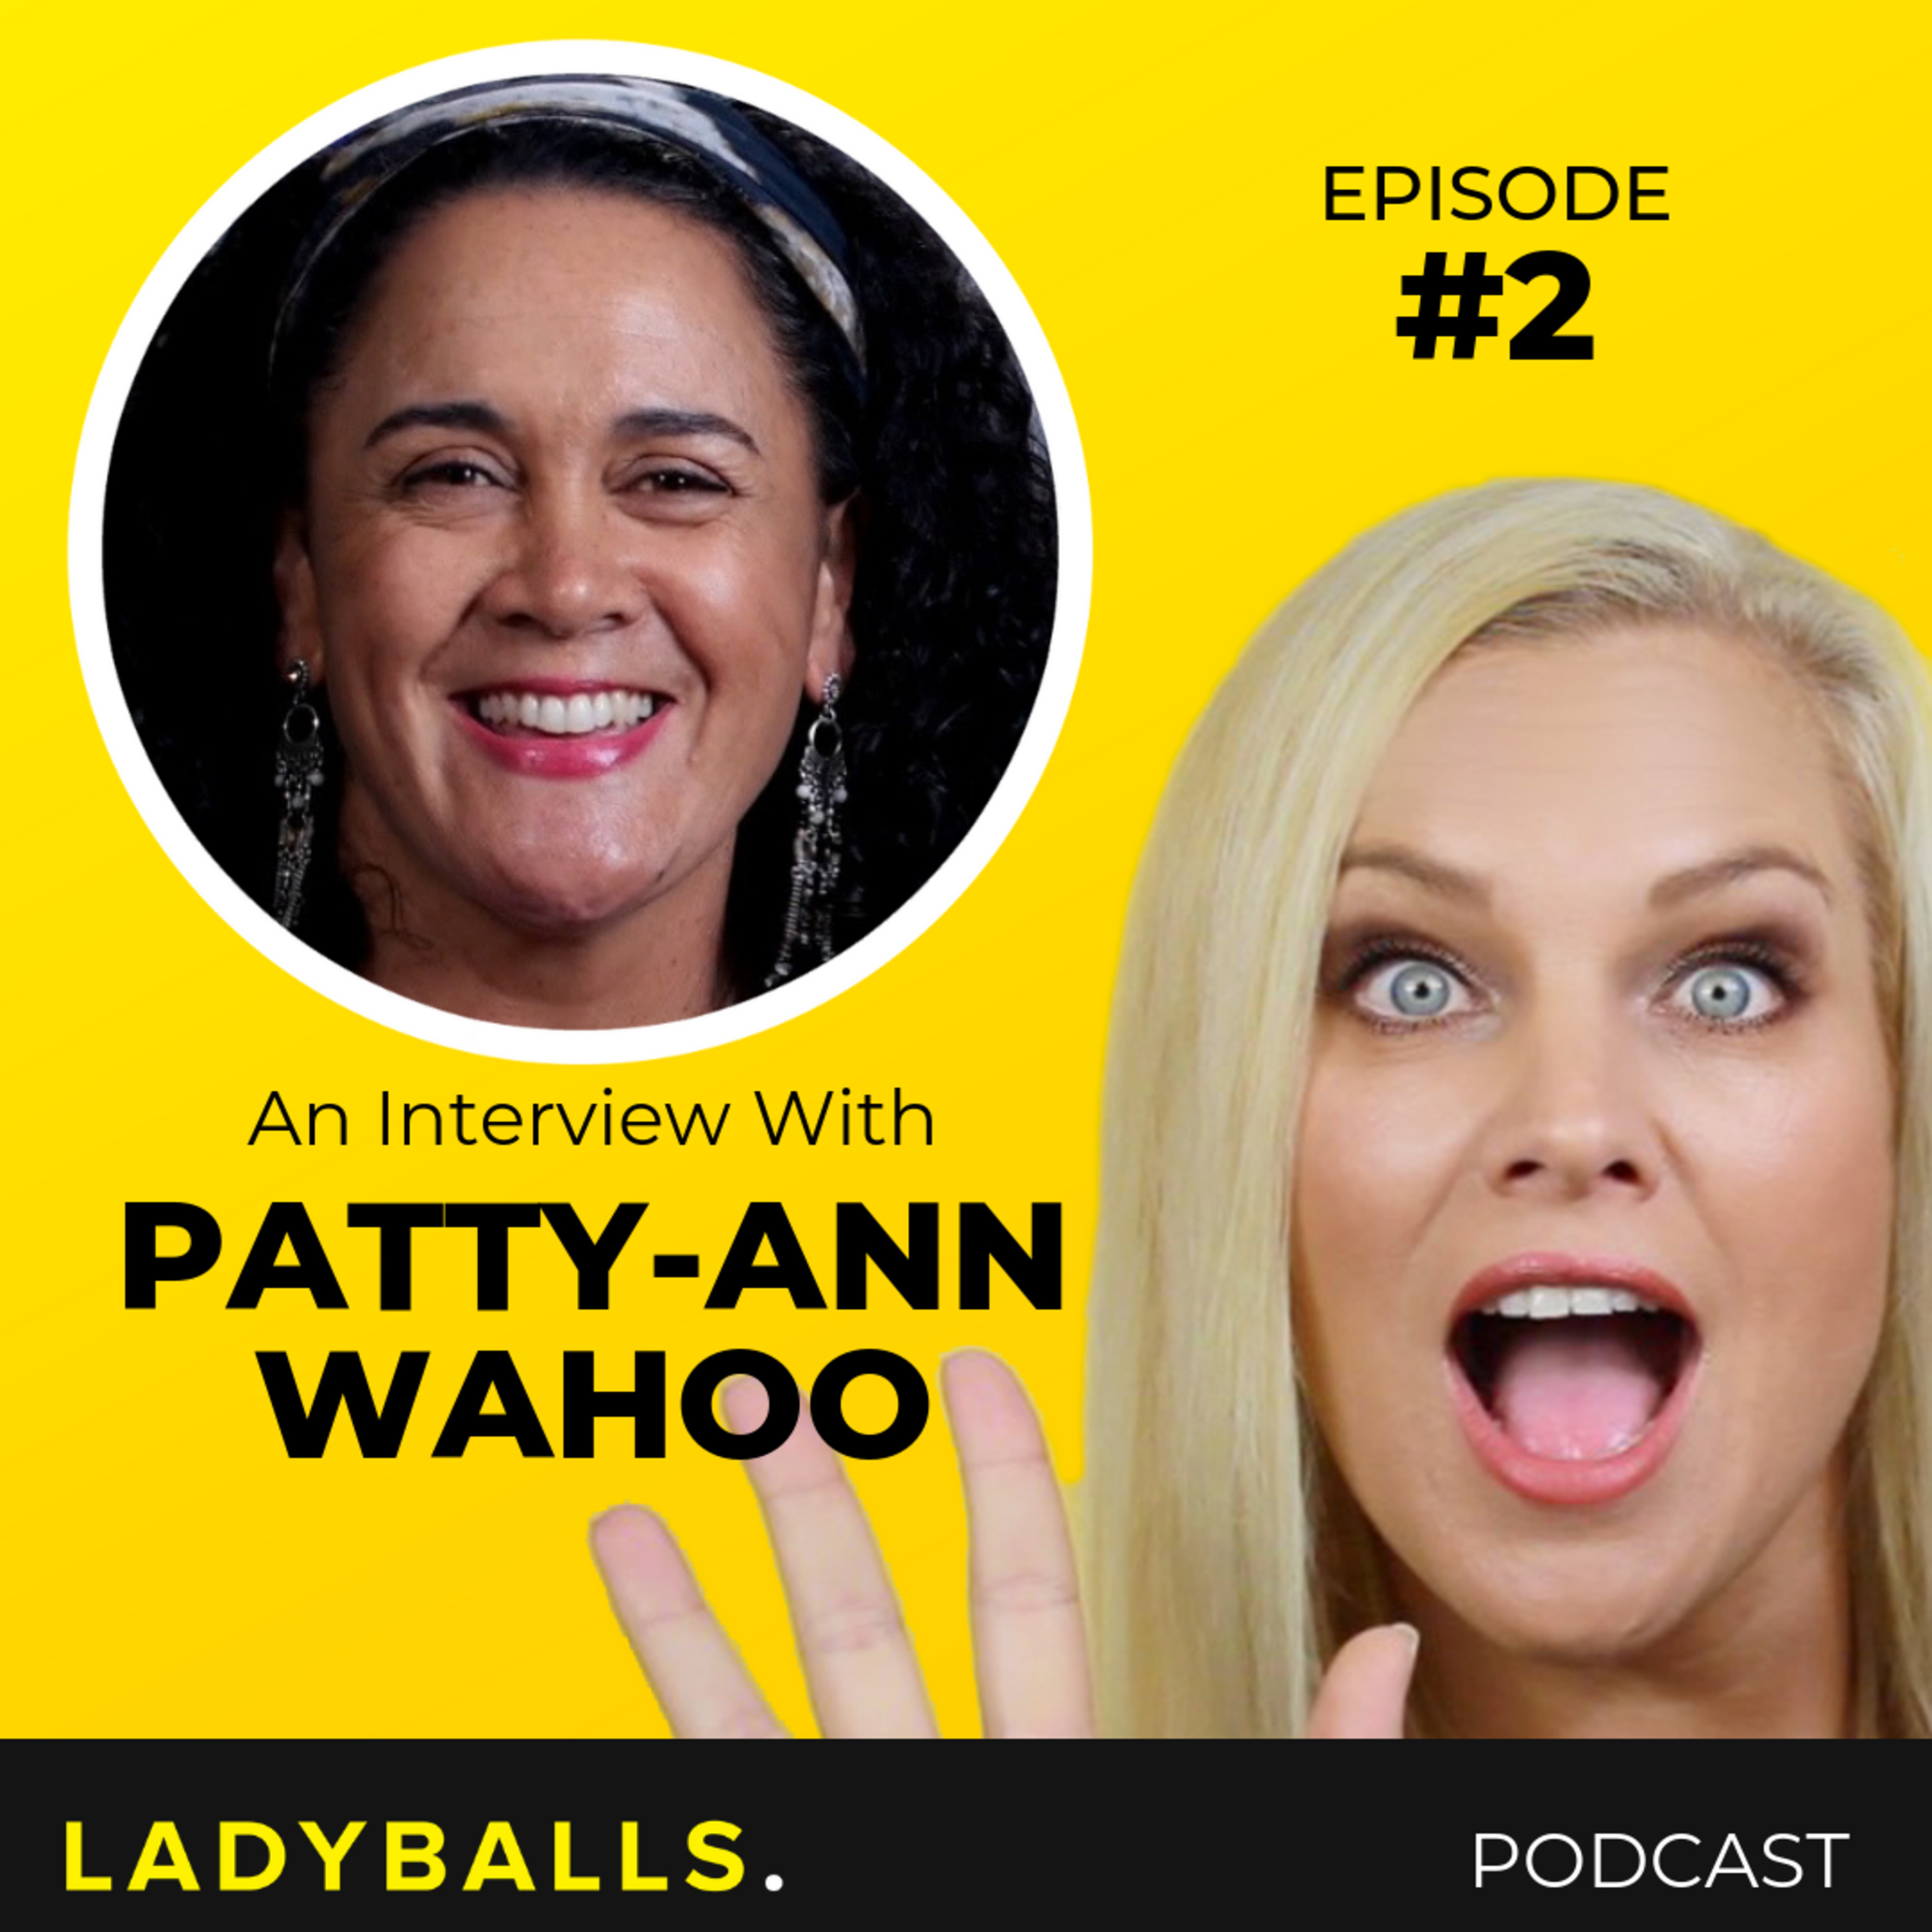 Patty-Ann Waho on parenting, abusive relationships and comedy